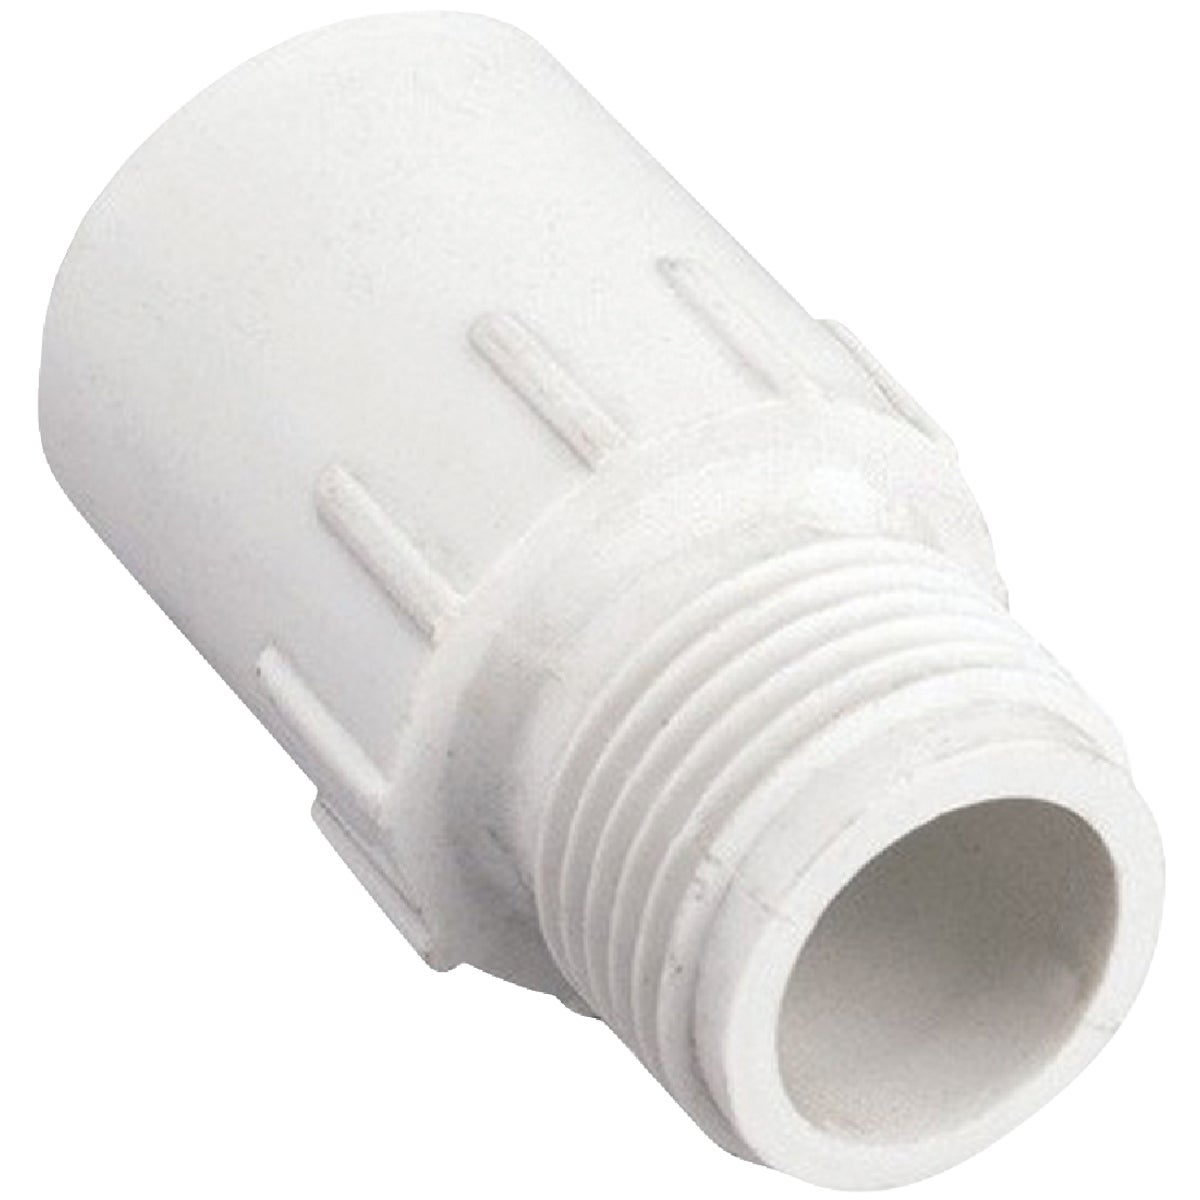 "3/4"" MHTXSLP PVC FITTING - 53361 by Orbit"